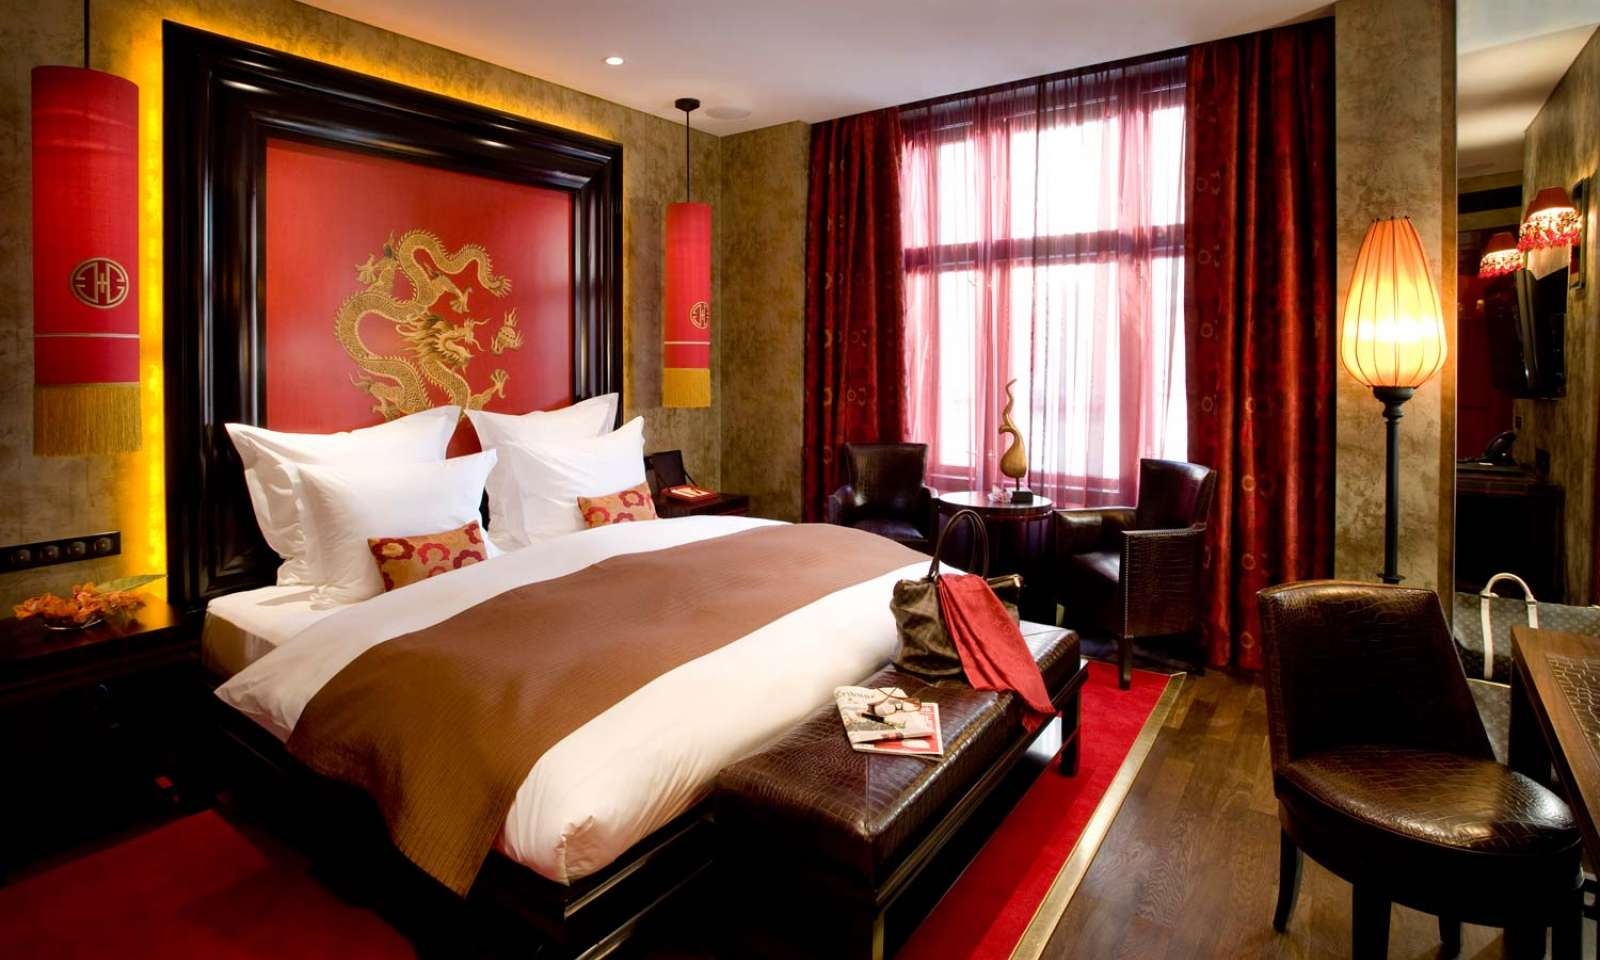 World visits 7 star hotels luxury rooms fantastic collection for Interior design room hotel